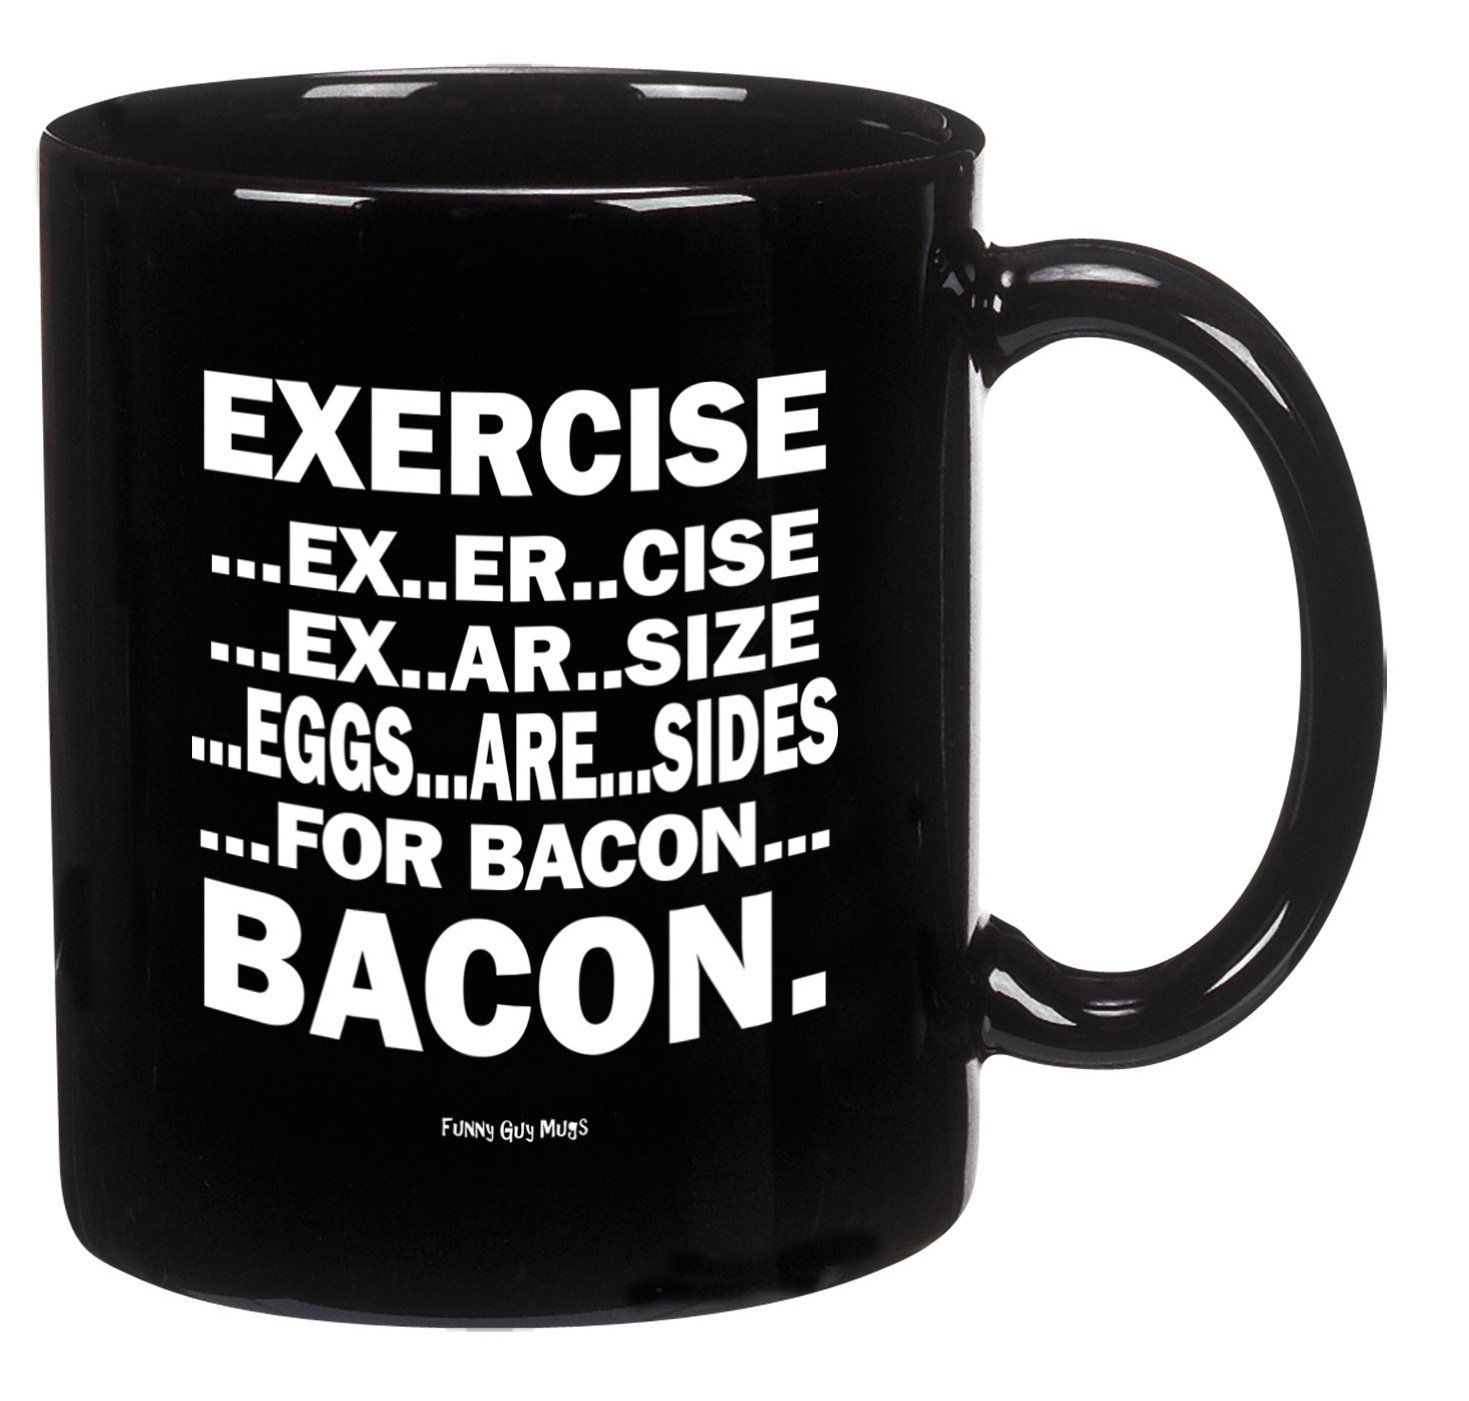 Funny Guy Mugs Eggs Are Sides For Bacon Ceramic Coffee Mug